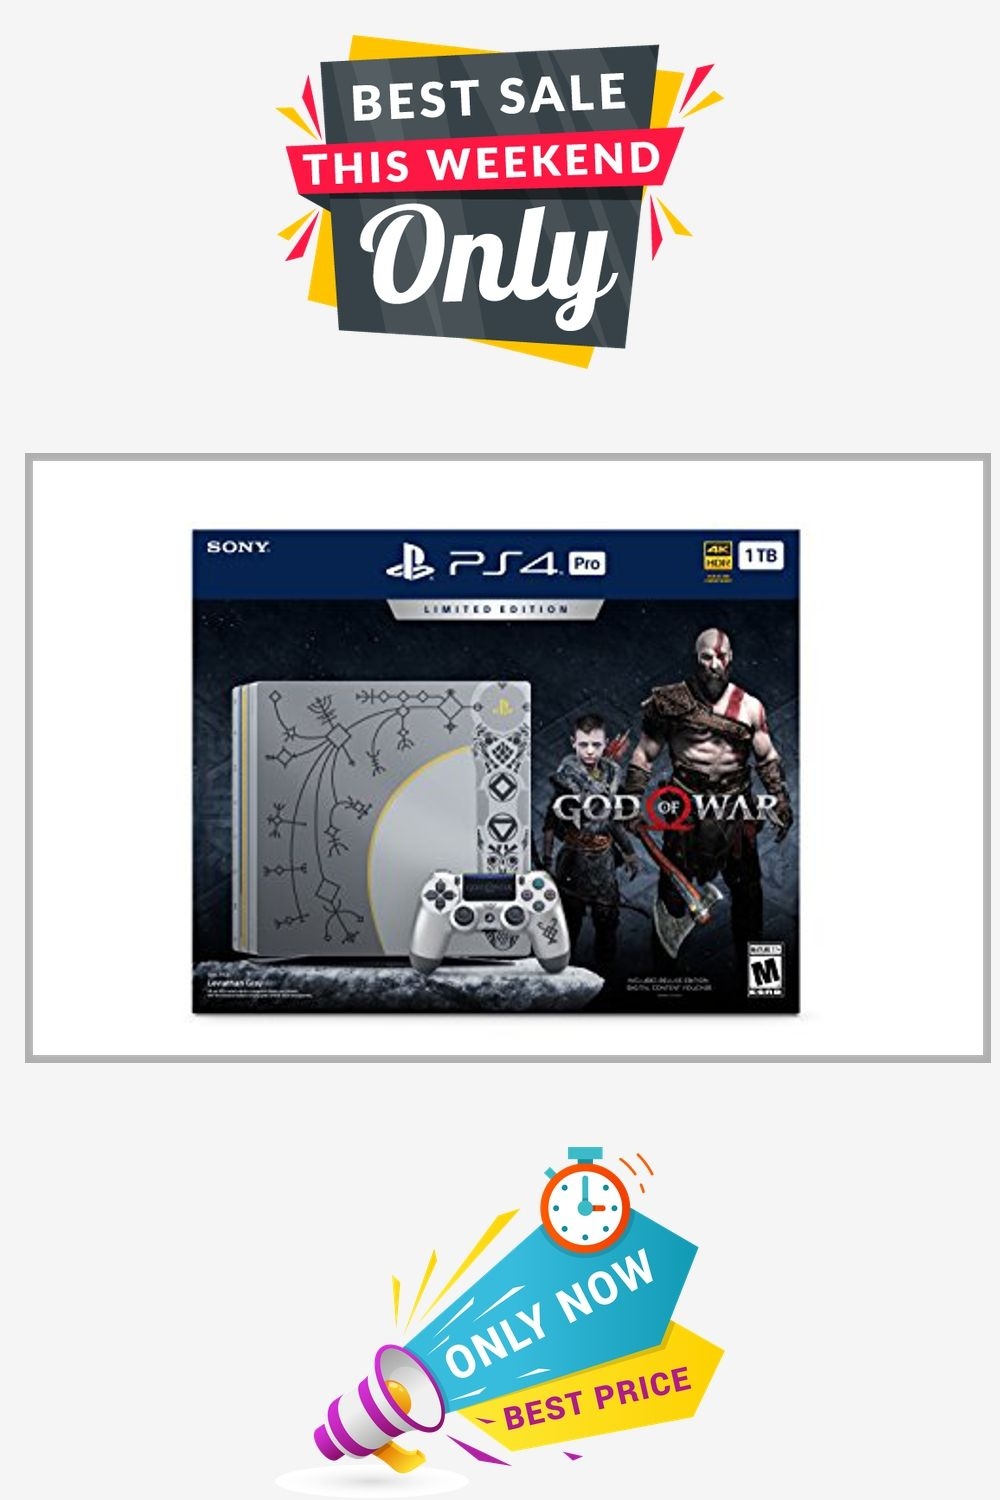 10 Best Ps4 Slim Ps4 Pro Labor Day Deals 2020 Upto 40 Off In 2020 Ps4 Slim Ps4 Pro Ps4